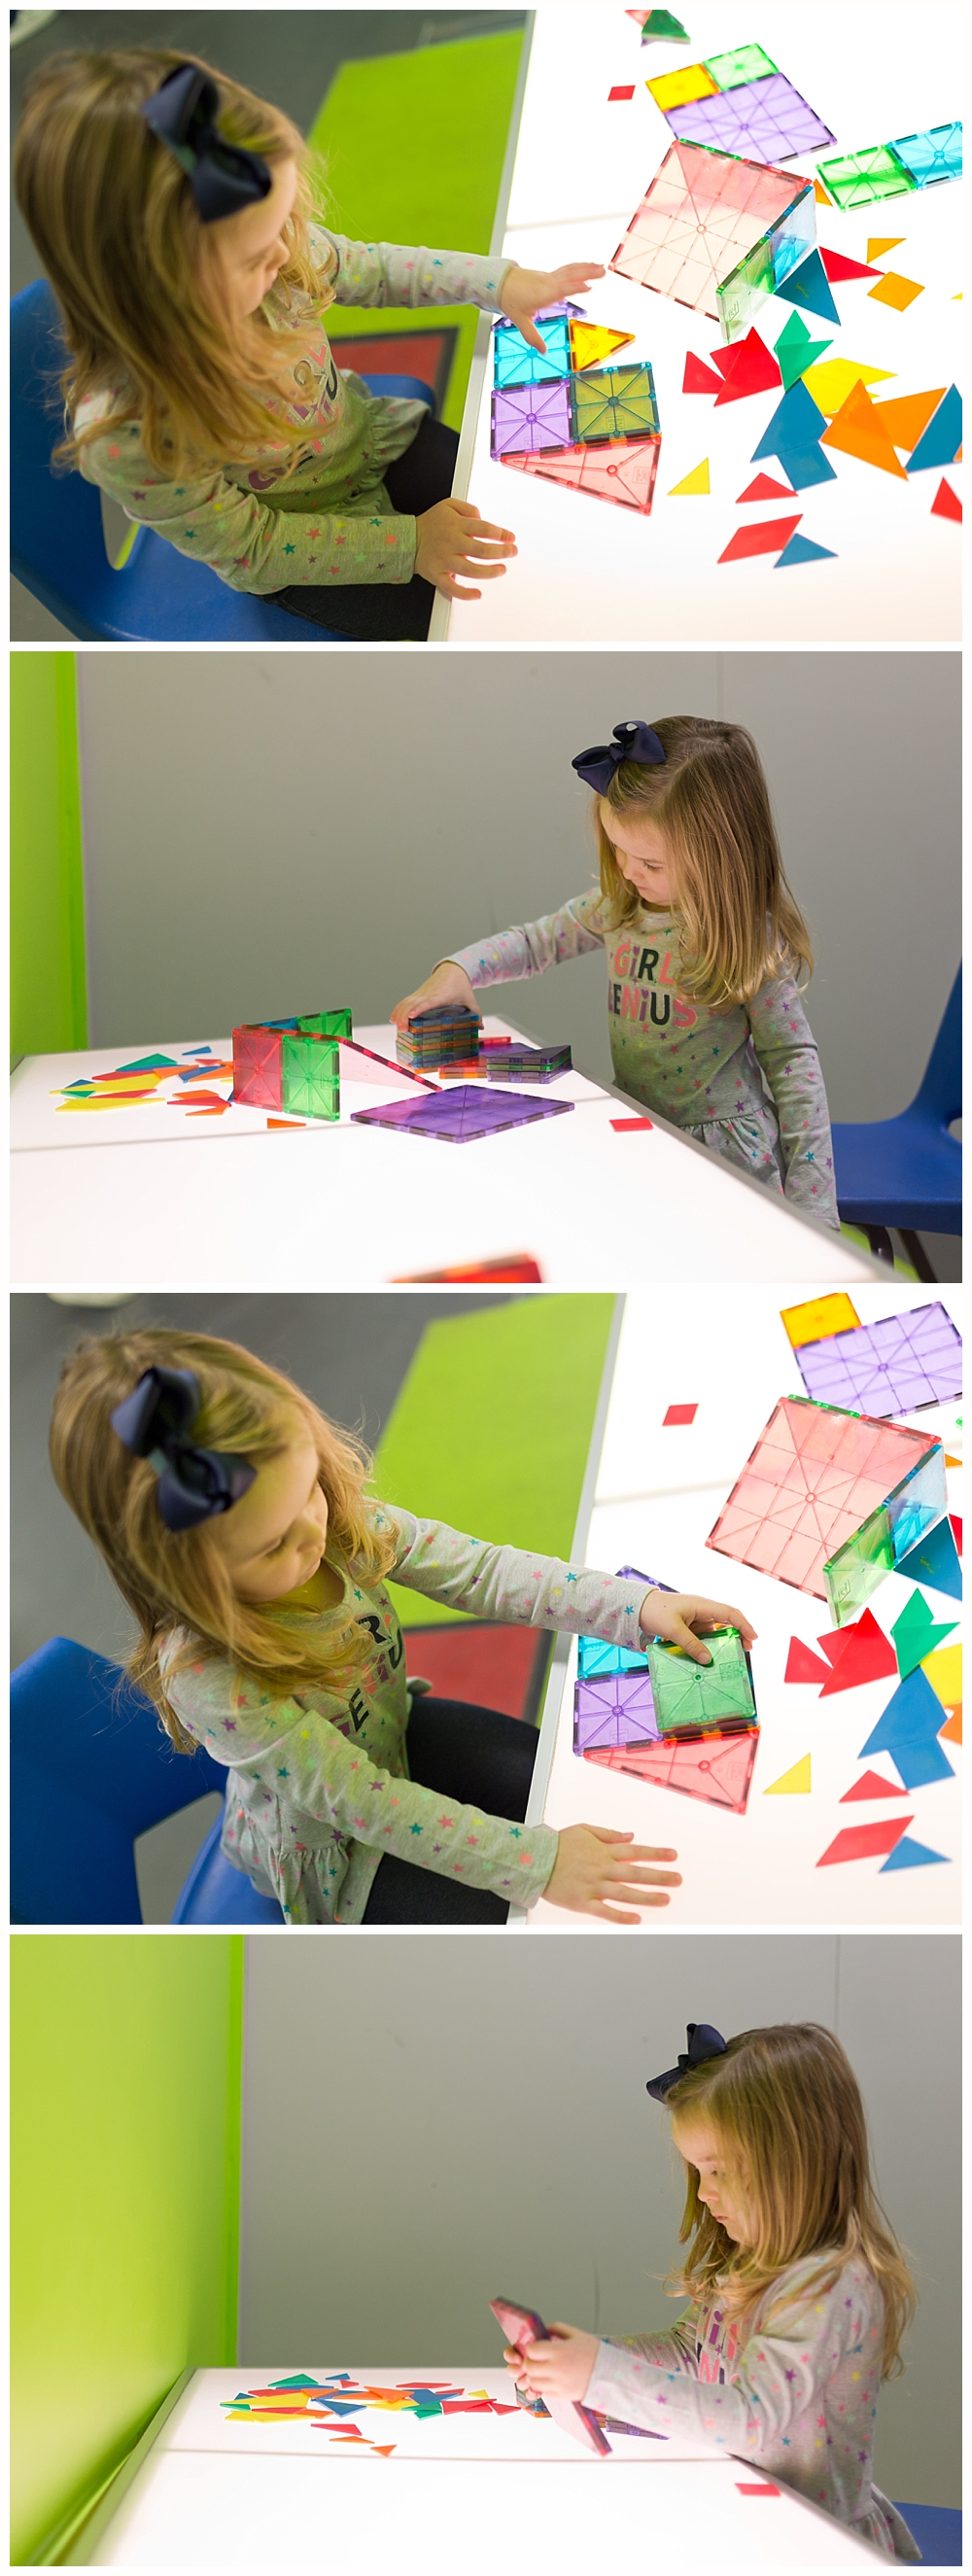 little girl playing with colorful tiles at Highlands Museum and Discovery Center in Ashland, KY